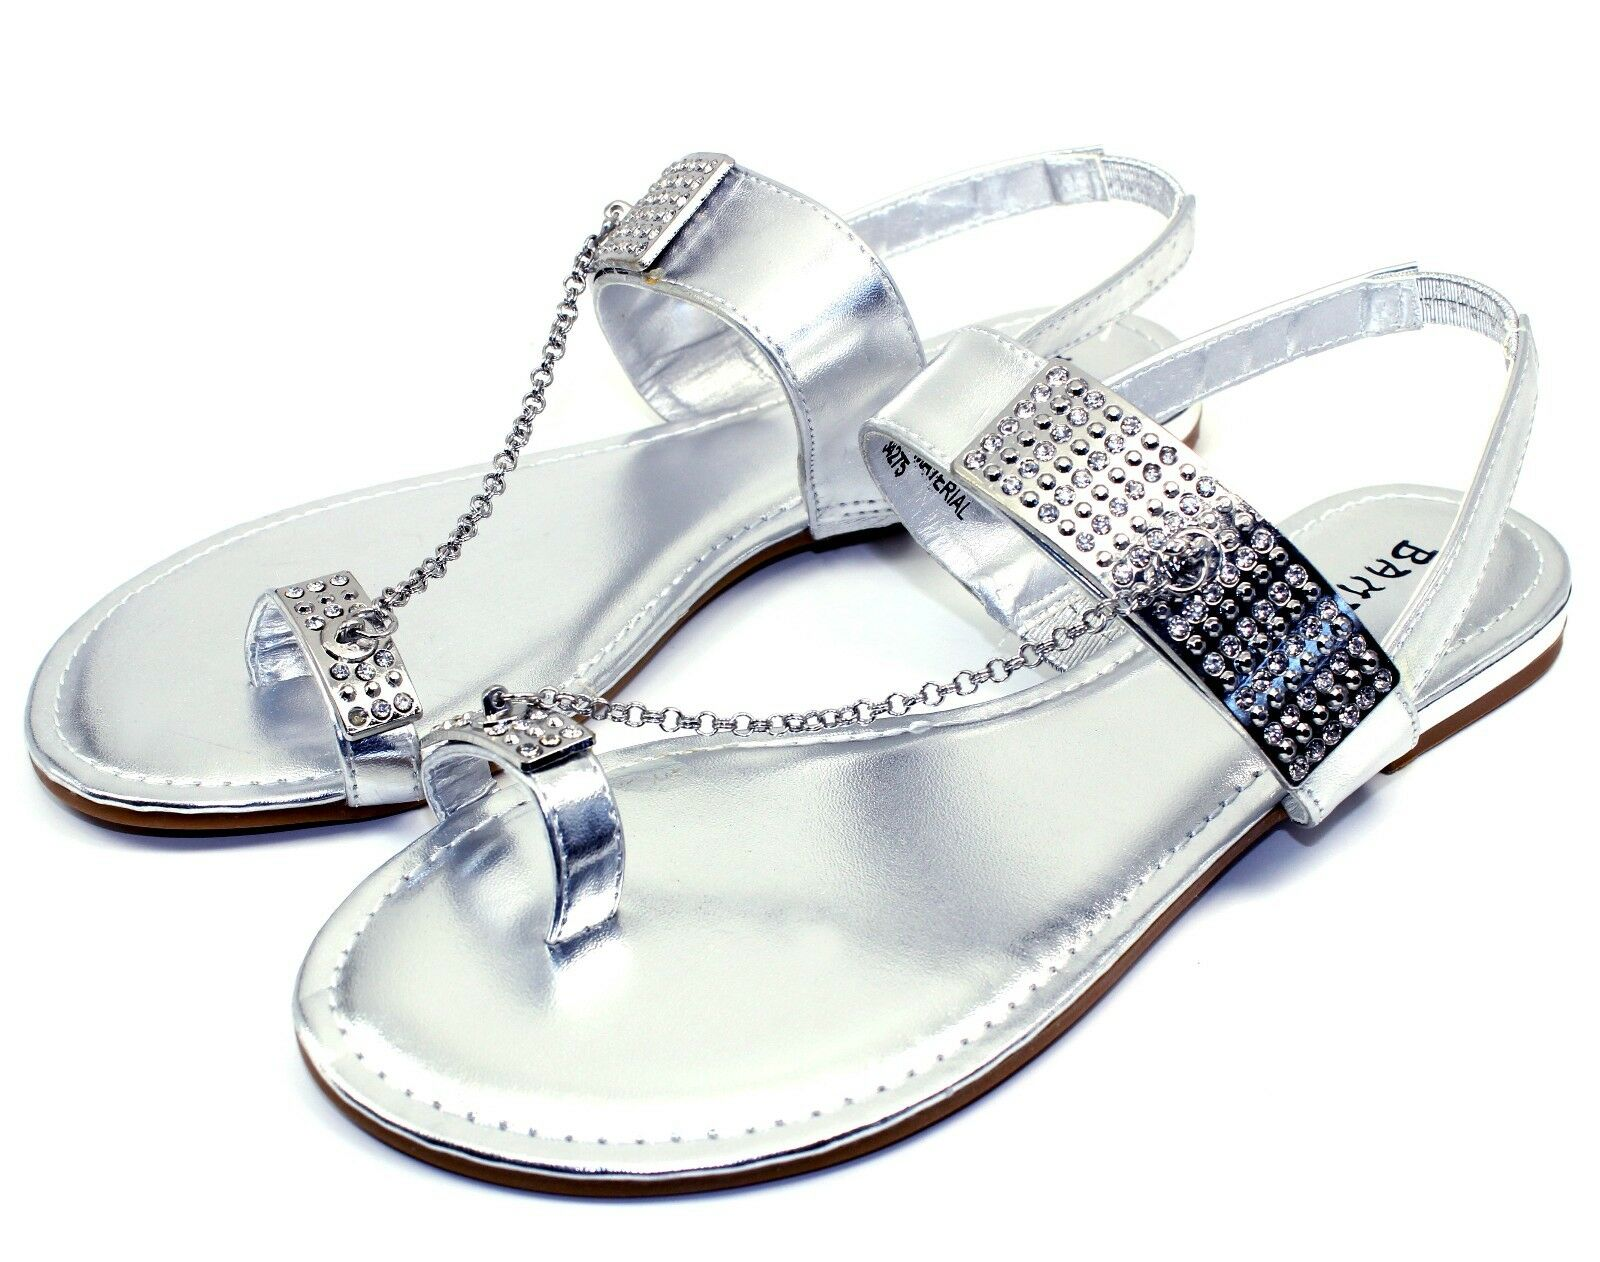 Ambra-77 Blink Chain Stone Flat Cute Sandals Silver Gladiator Party Women Shoes Silver Sandals 182e64